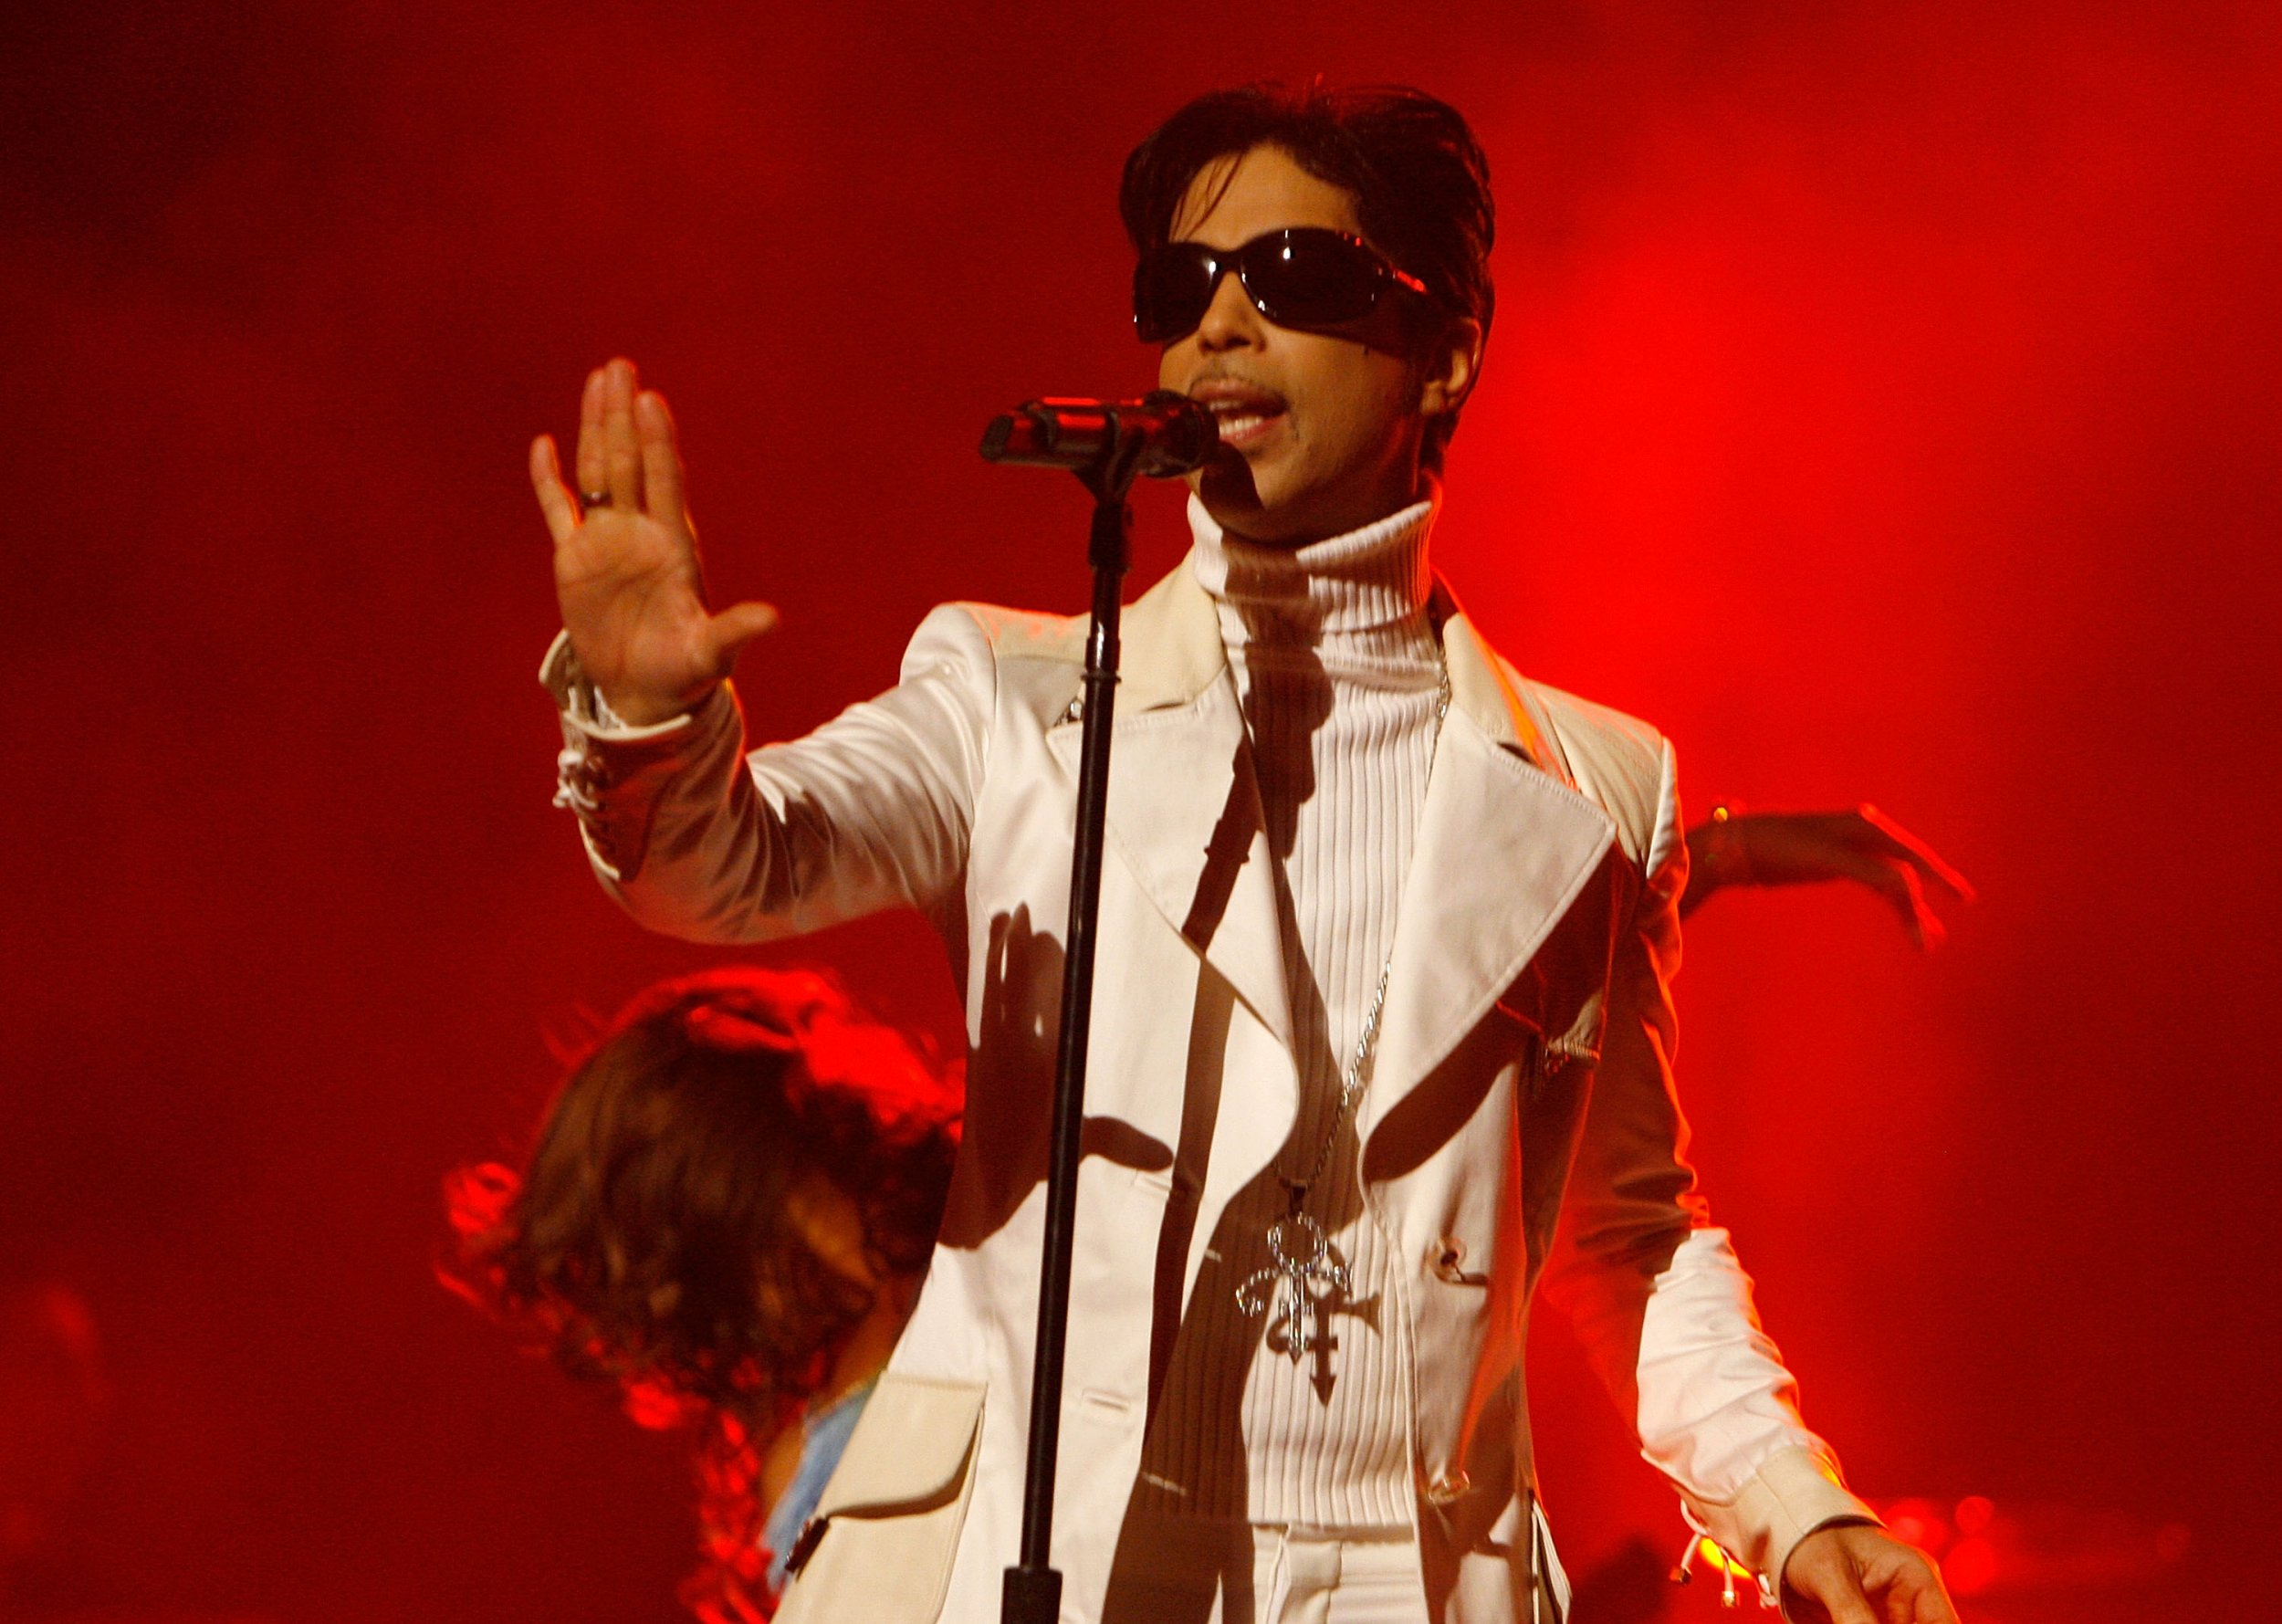 Prince in 2007